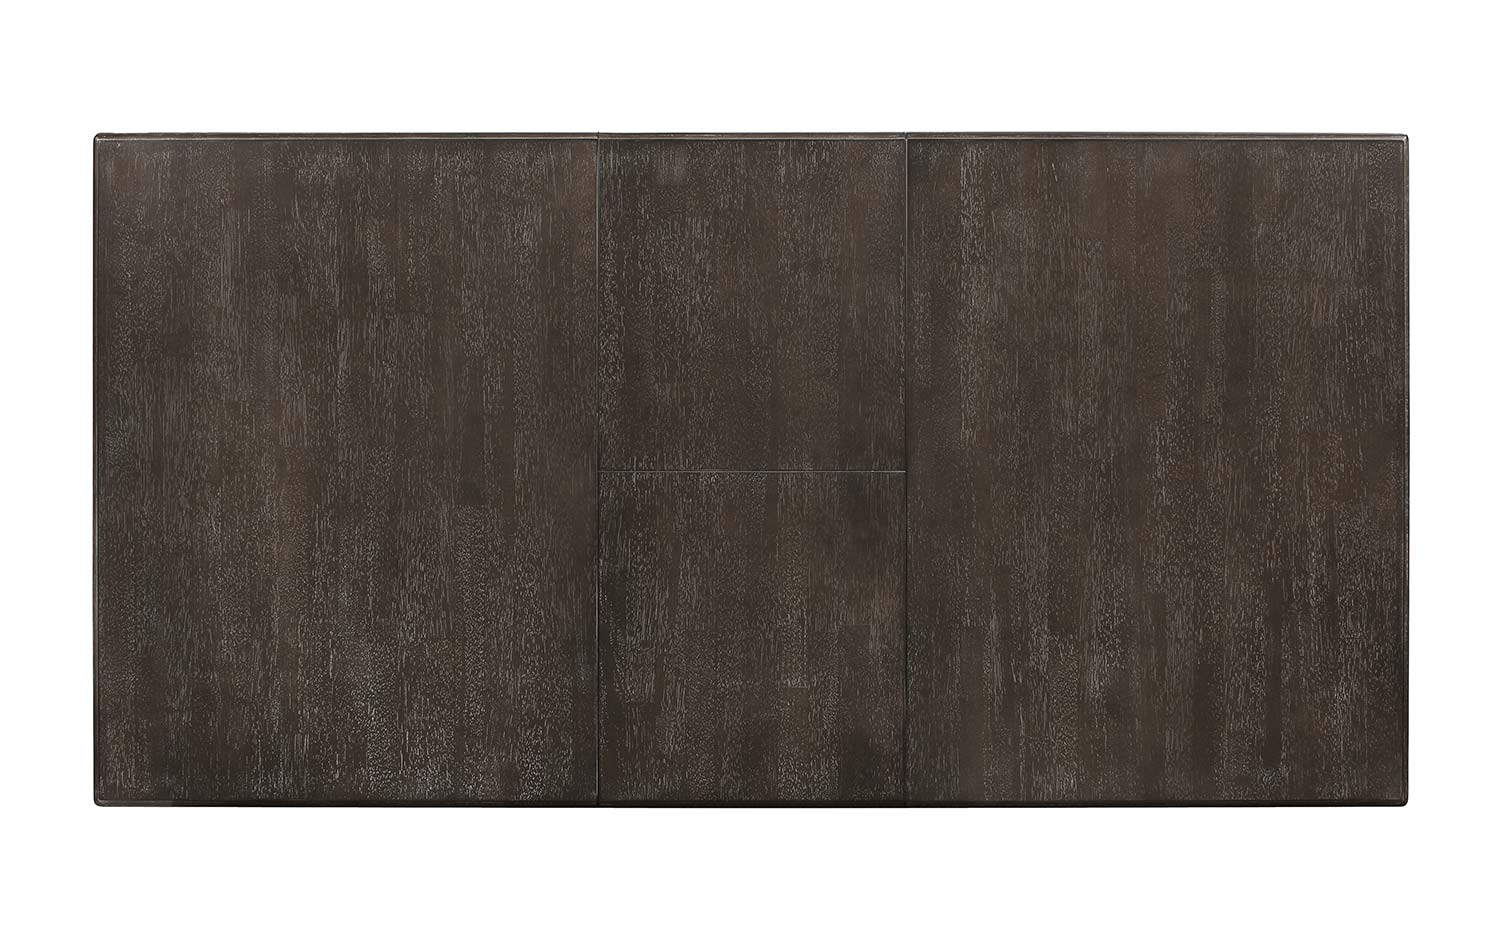 Homelegance Fulbright Rectangular Dining Table with Butterfly Leaf - Weathered Gray Rub Through Finish